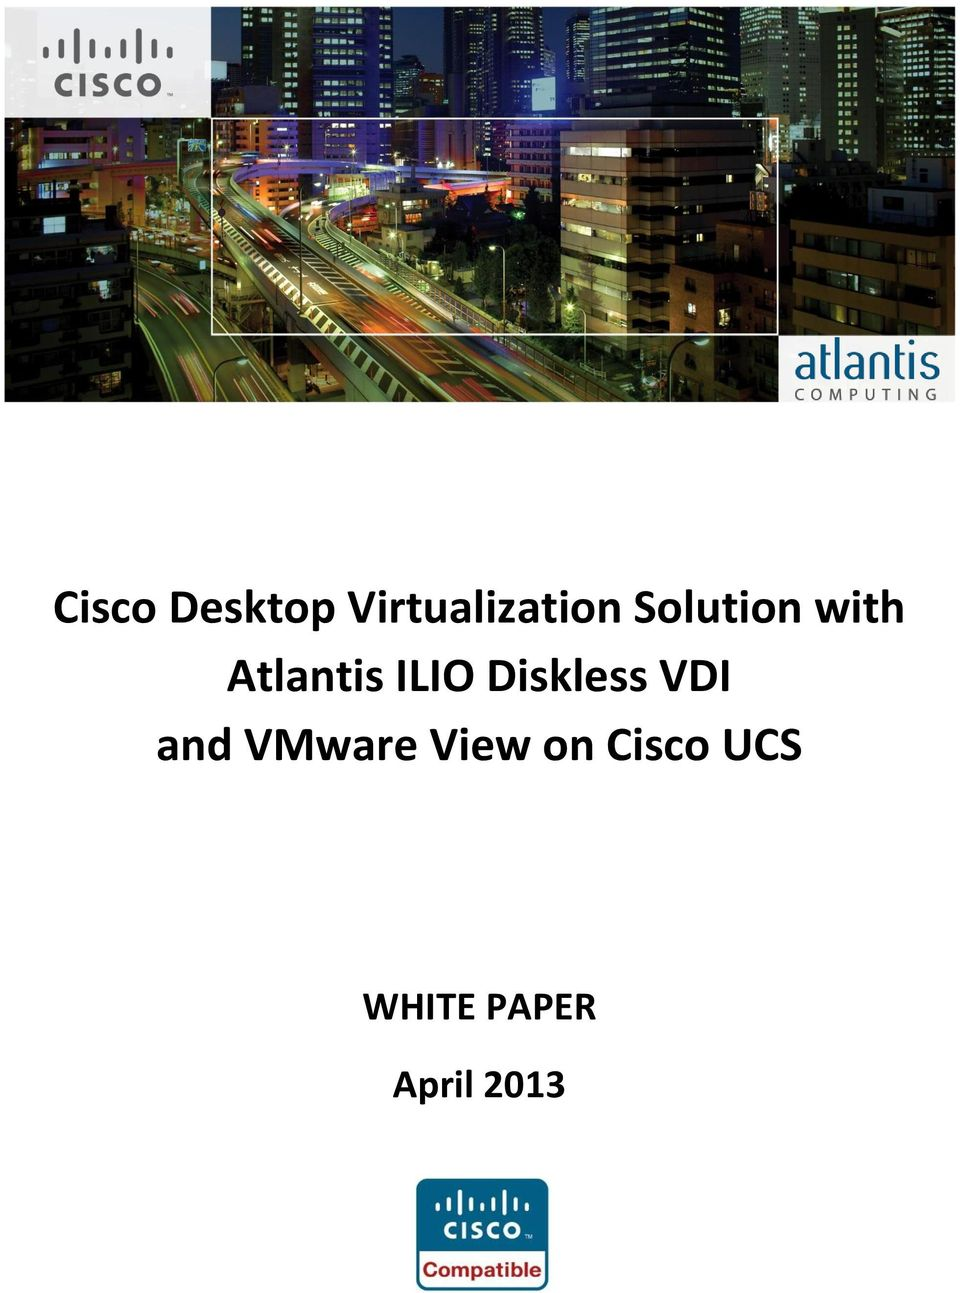 Diskless VDI and VMware View